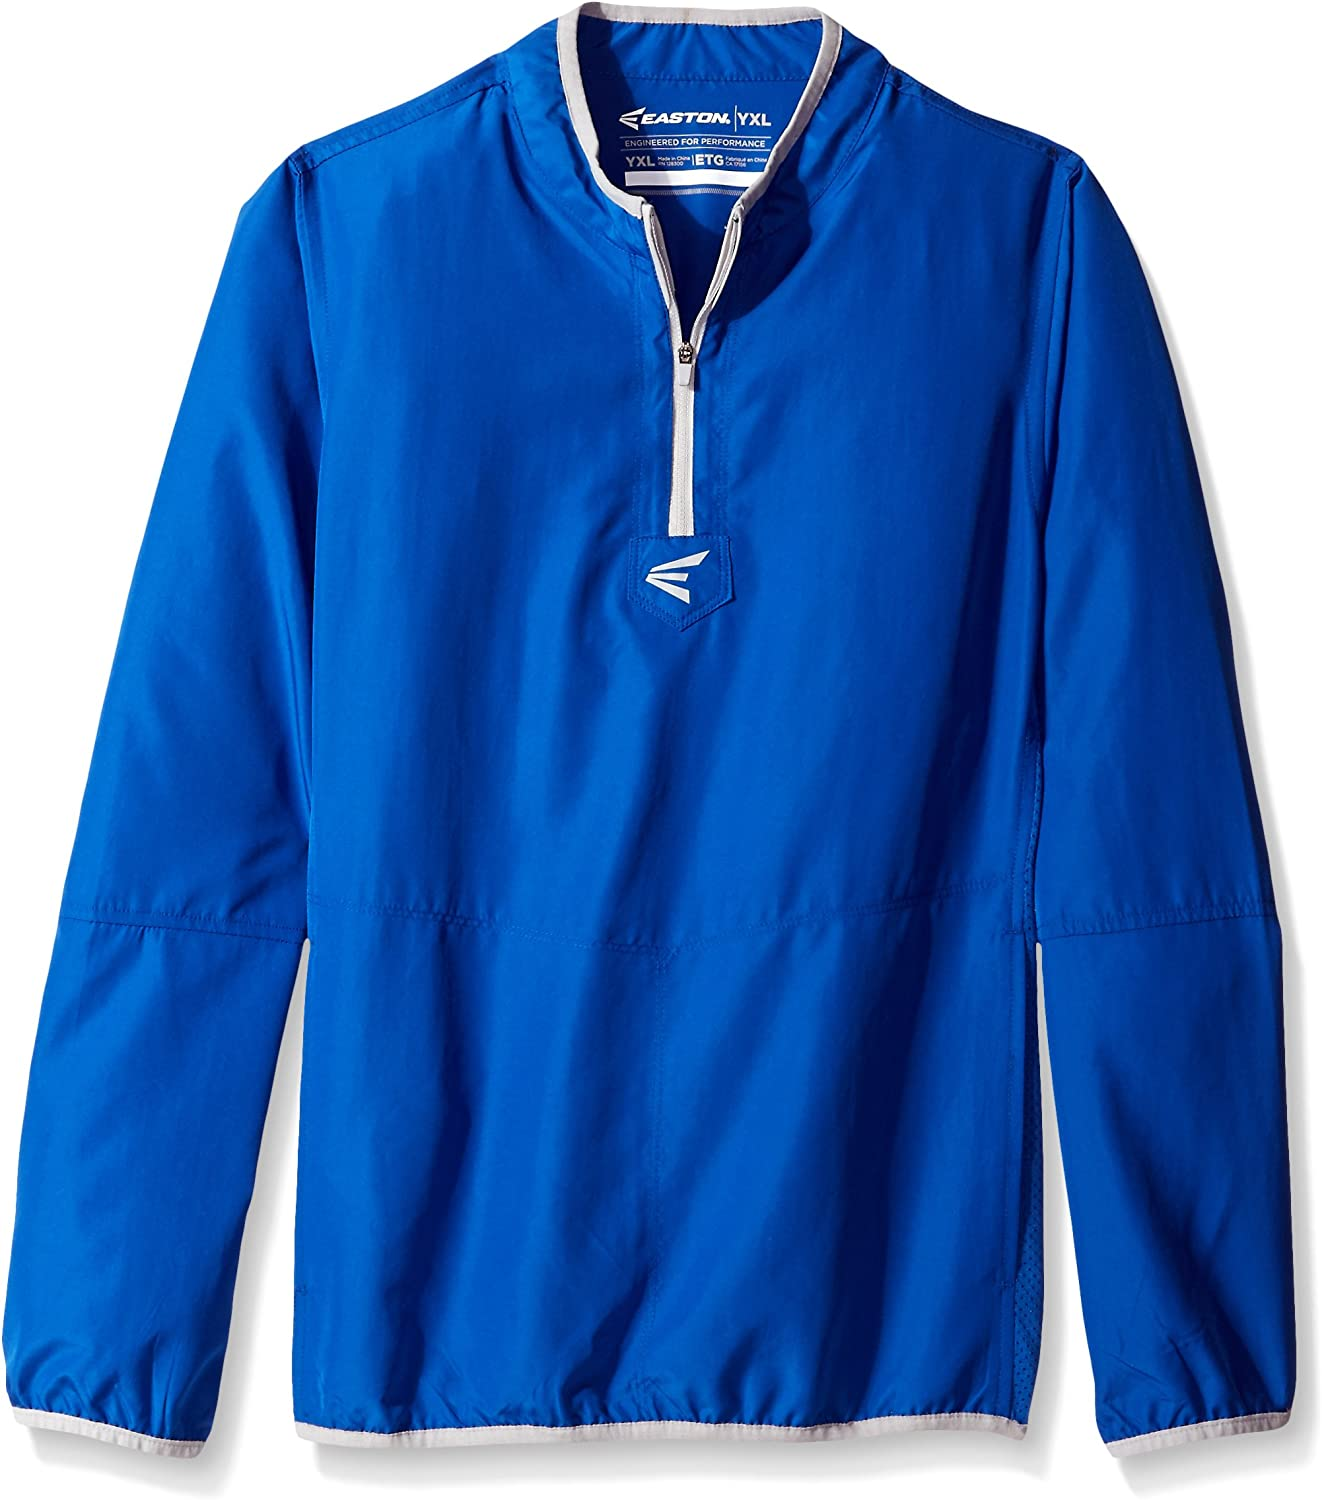 Easton M5 CAGE Long Sleeve Jacket   2020   Lightweight, Mobility Breathable Design for Game Day   Practice   Off Field Use   Baseball   Elastic Bound Hem + Neck + Cuffs   Customizable w/Decorations